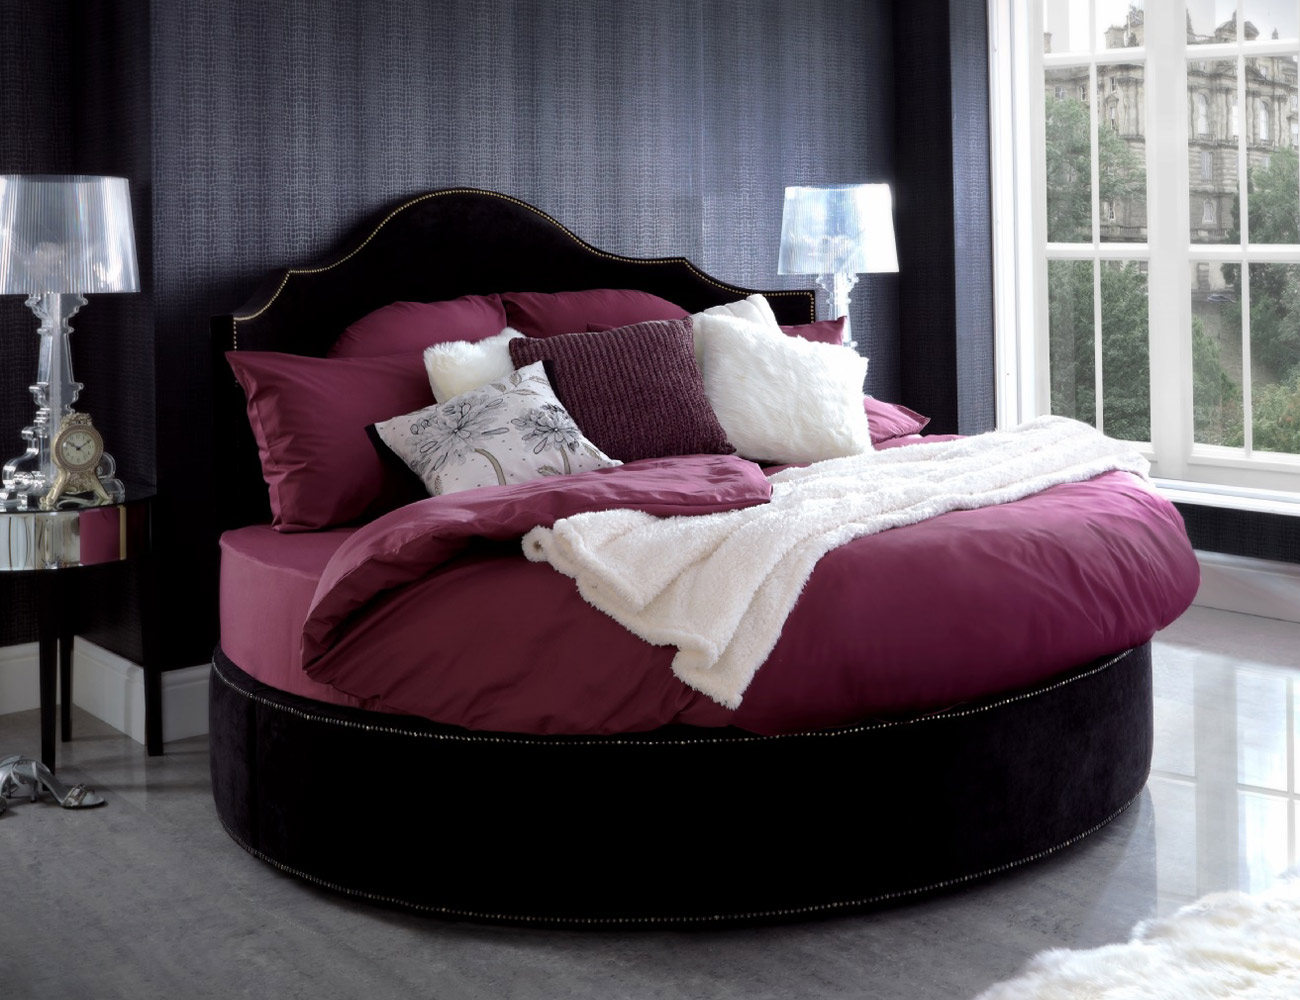 Headboard for Round Bed | Round Beds | Round Beds